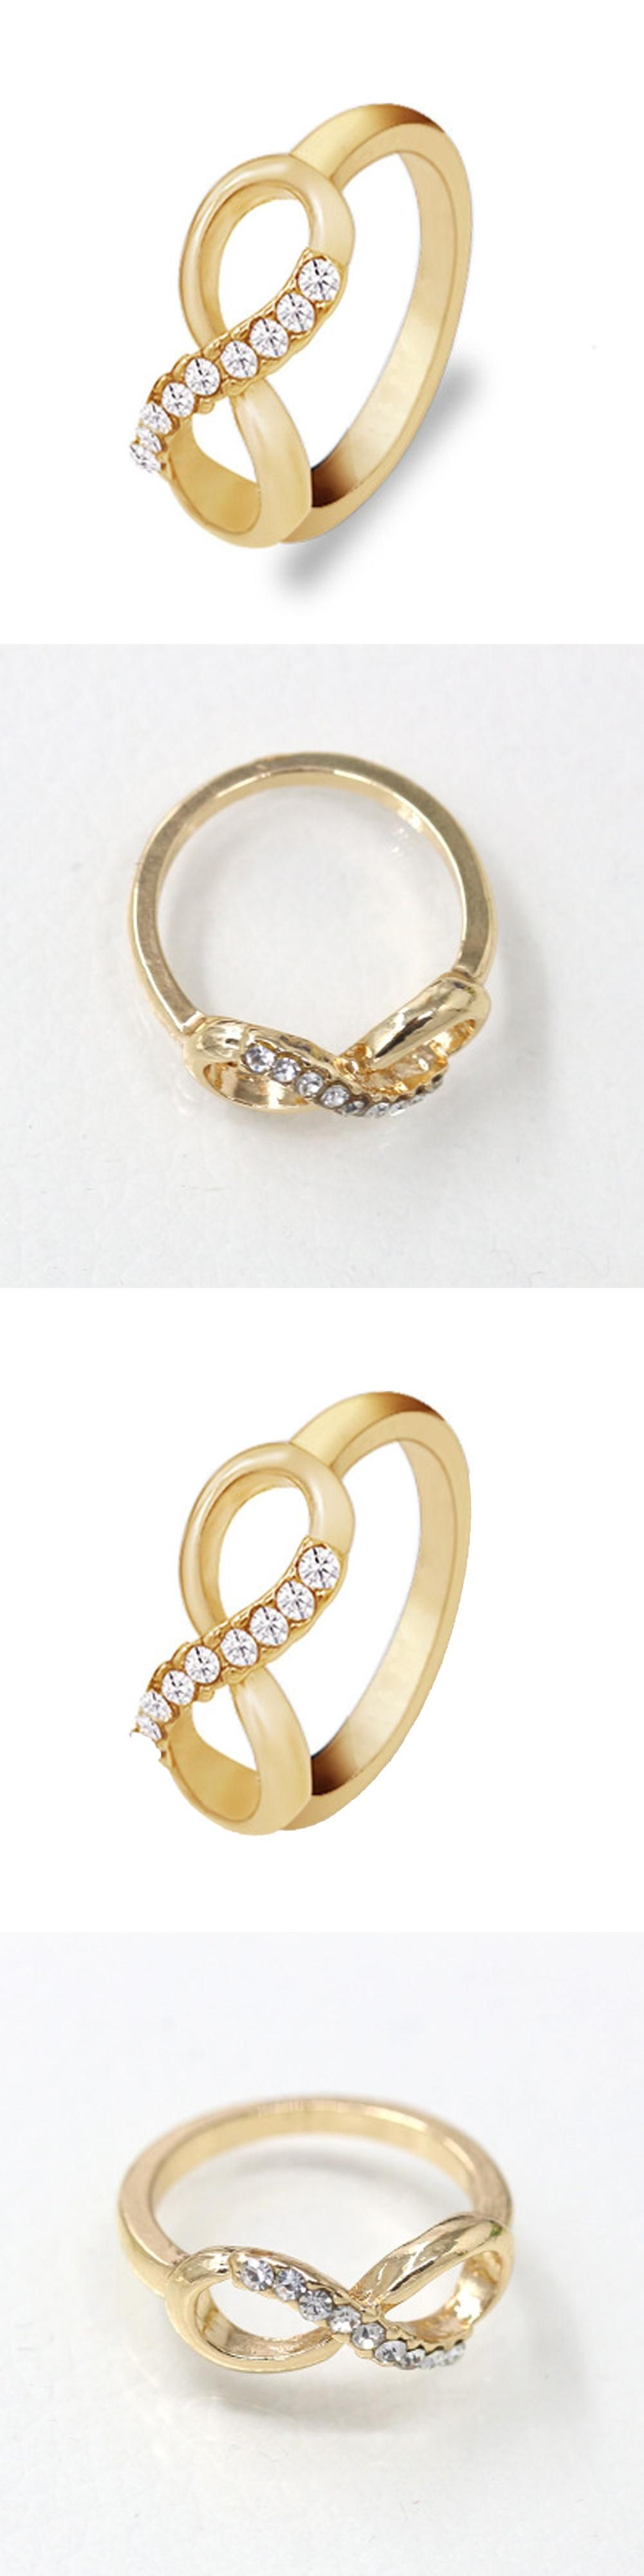 ring engagement my pics on post tones topic skin peach rose darker korean gold sapphire rings